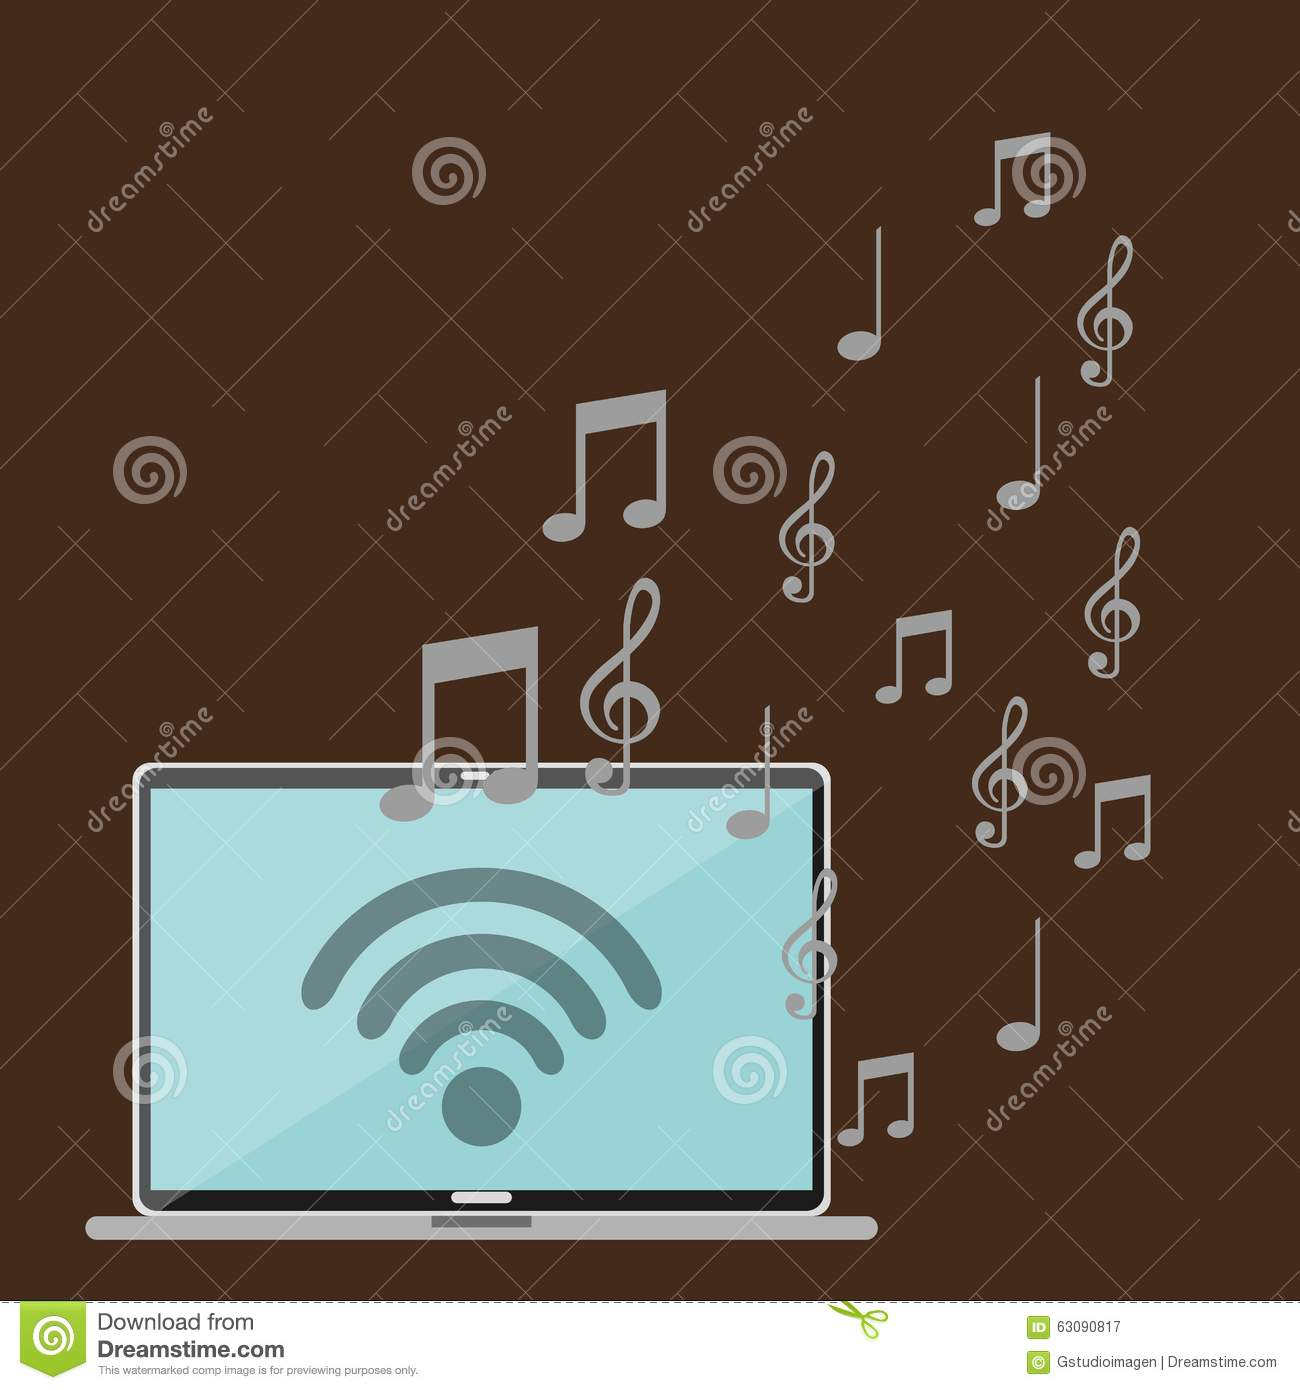 Download Conception De Mode De Vie De Musique Illustration de Vecteur - Illustration du concept, signal: 63090817